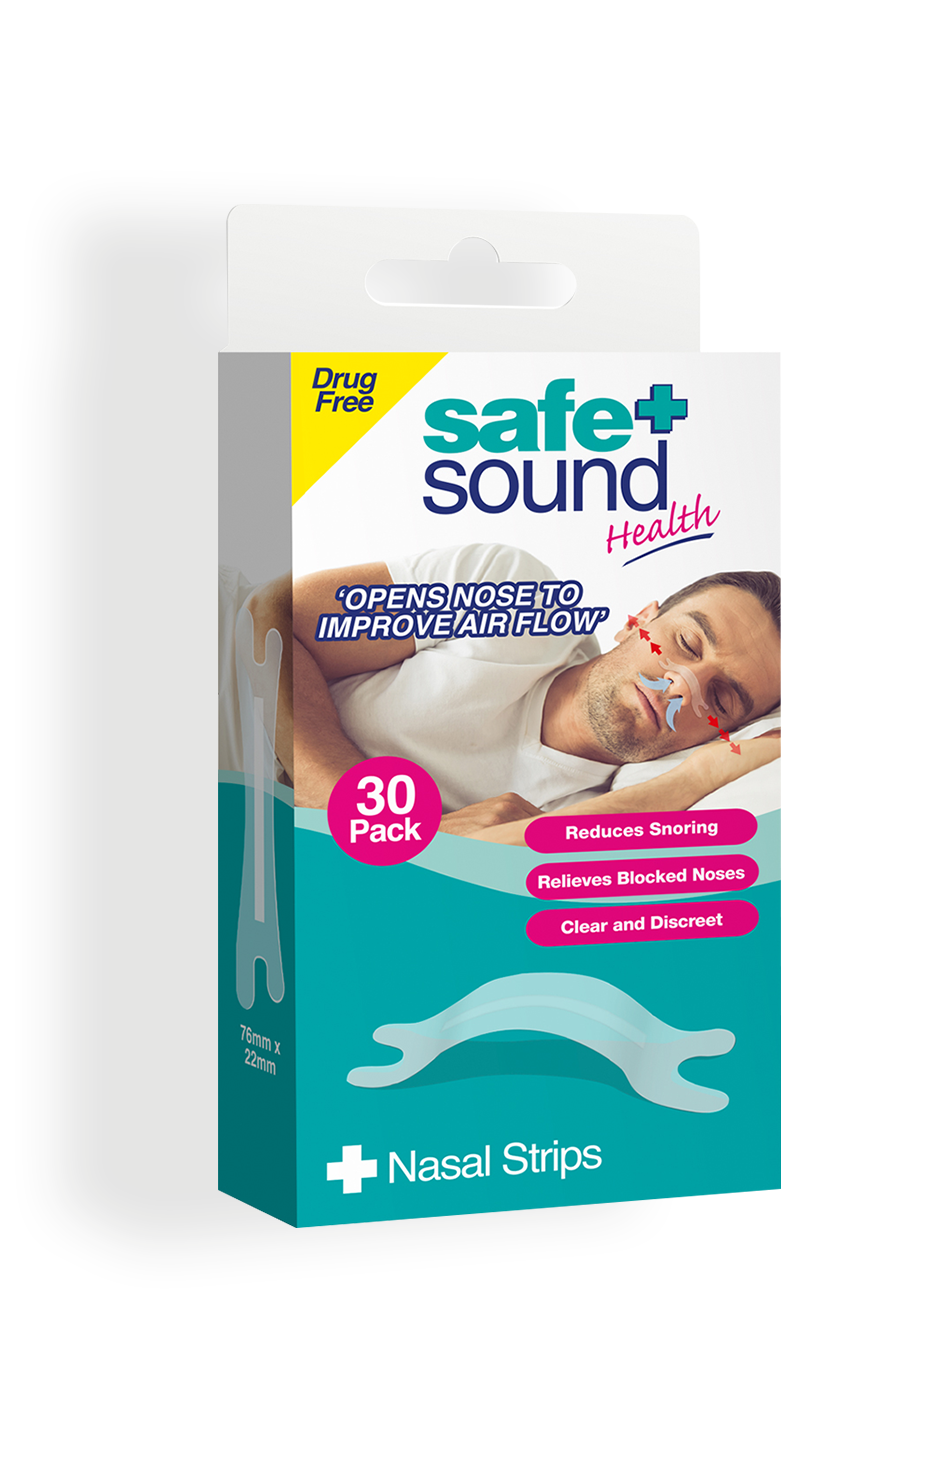 Safe and Sound Health Nasal Strips